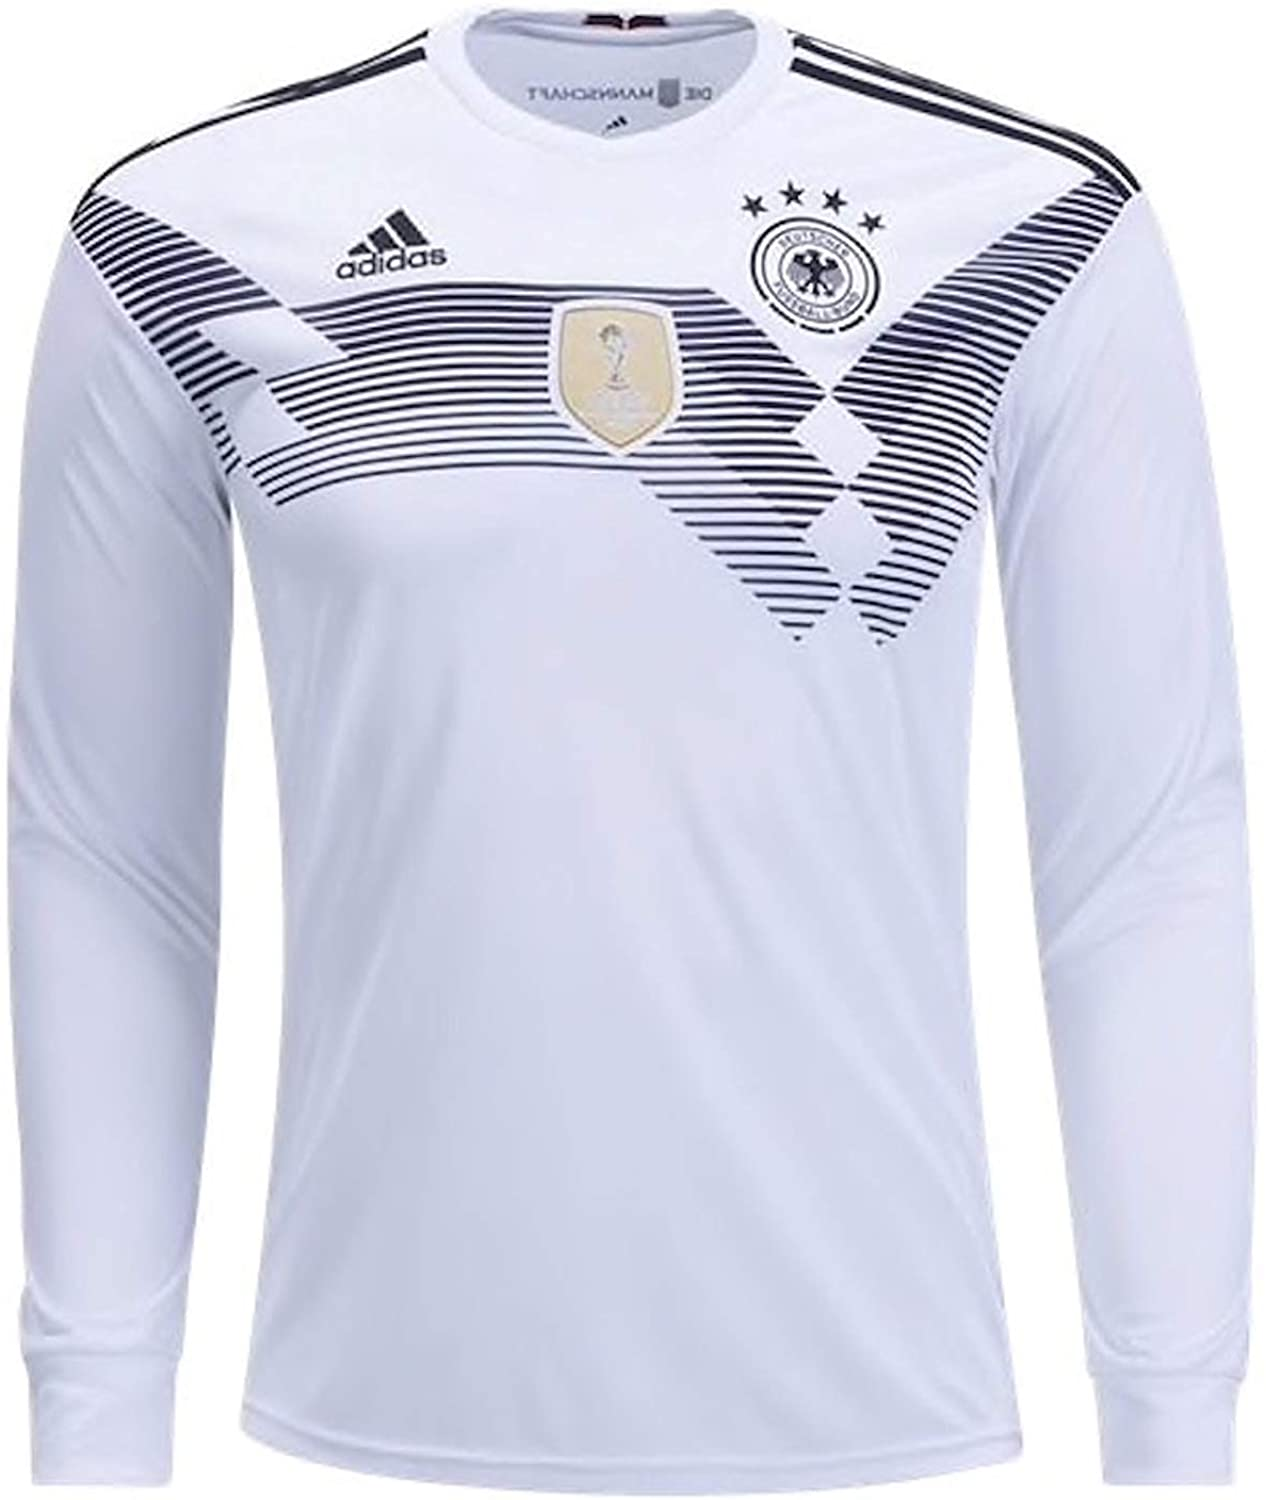 adidas Men's Soccer Germany Home Long Sleeve Jersey